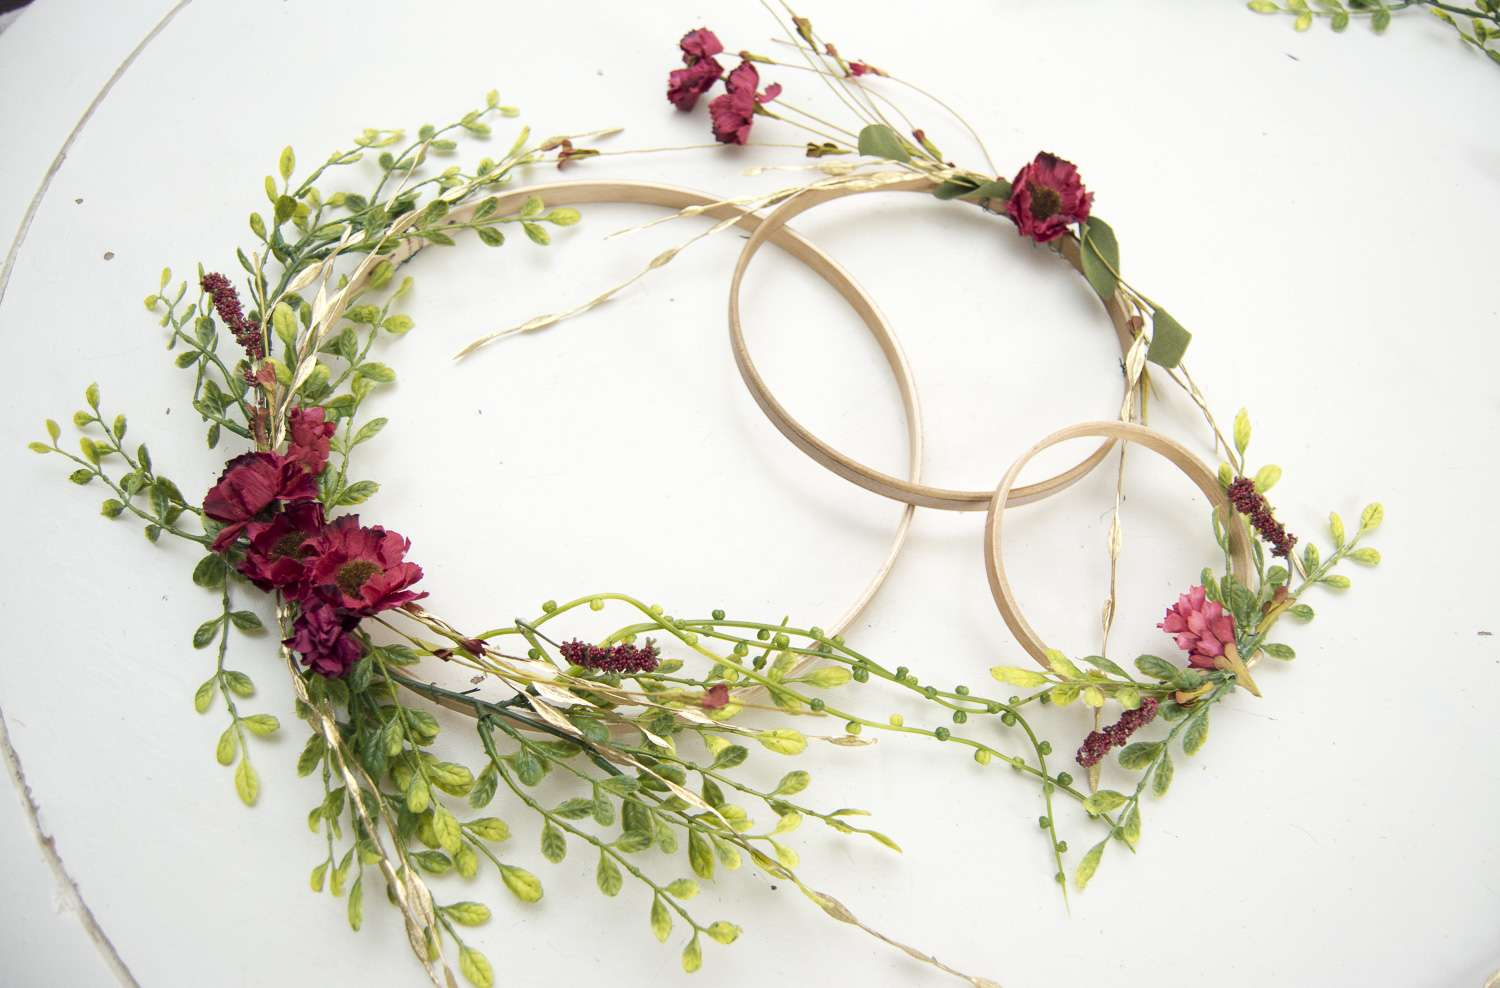 If you're looking for a unique, affordable and simple way to add interest to your home then make sure to try out my easy DIY hoop wreaths tutorial!